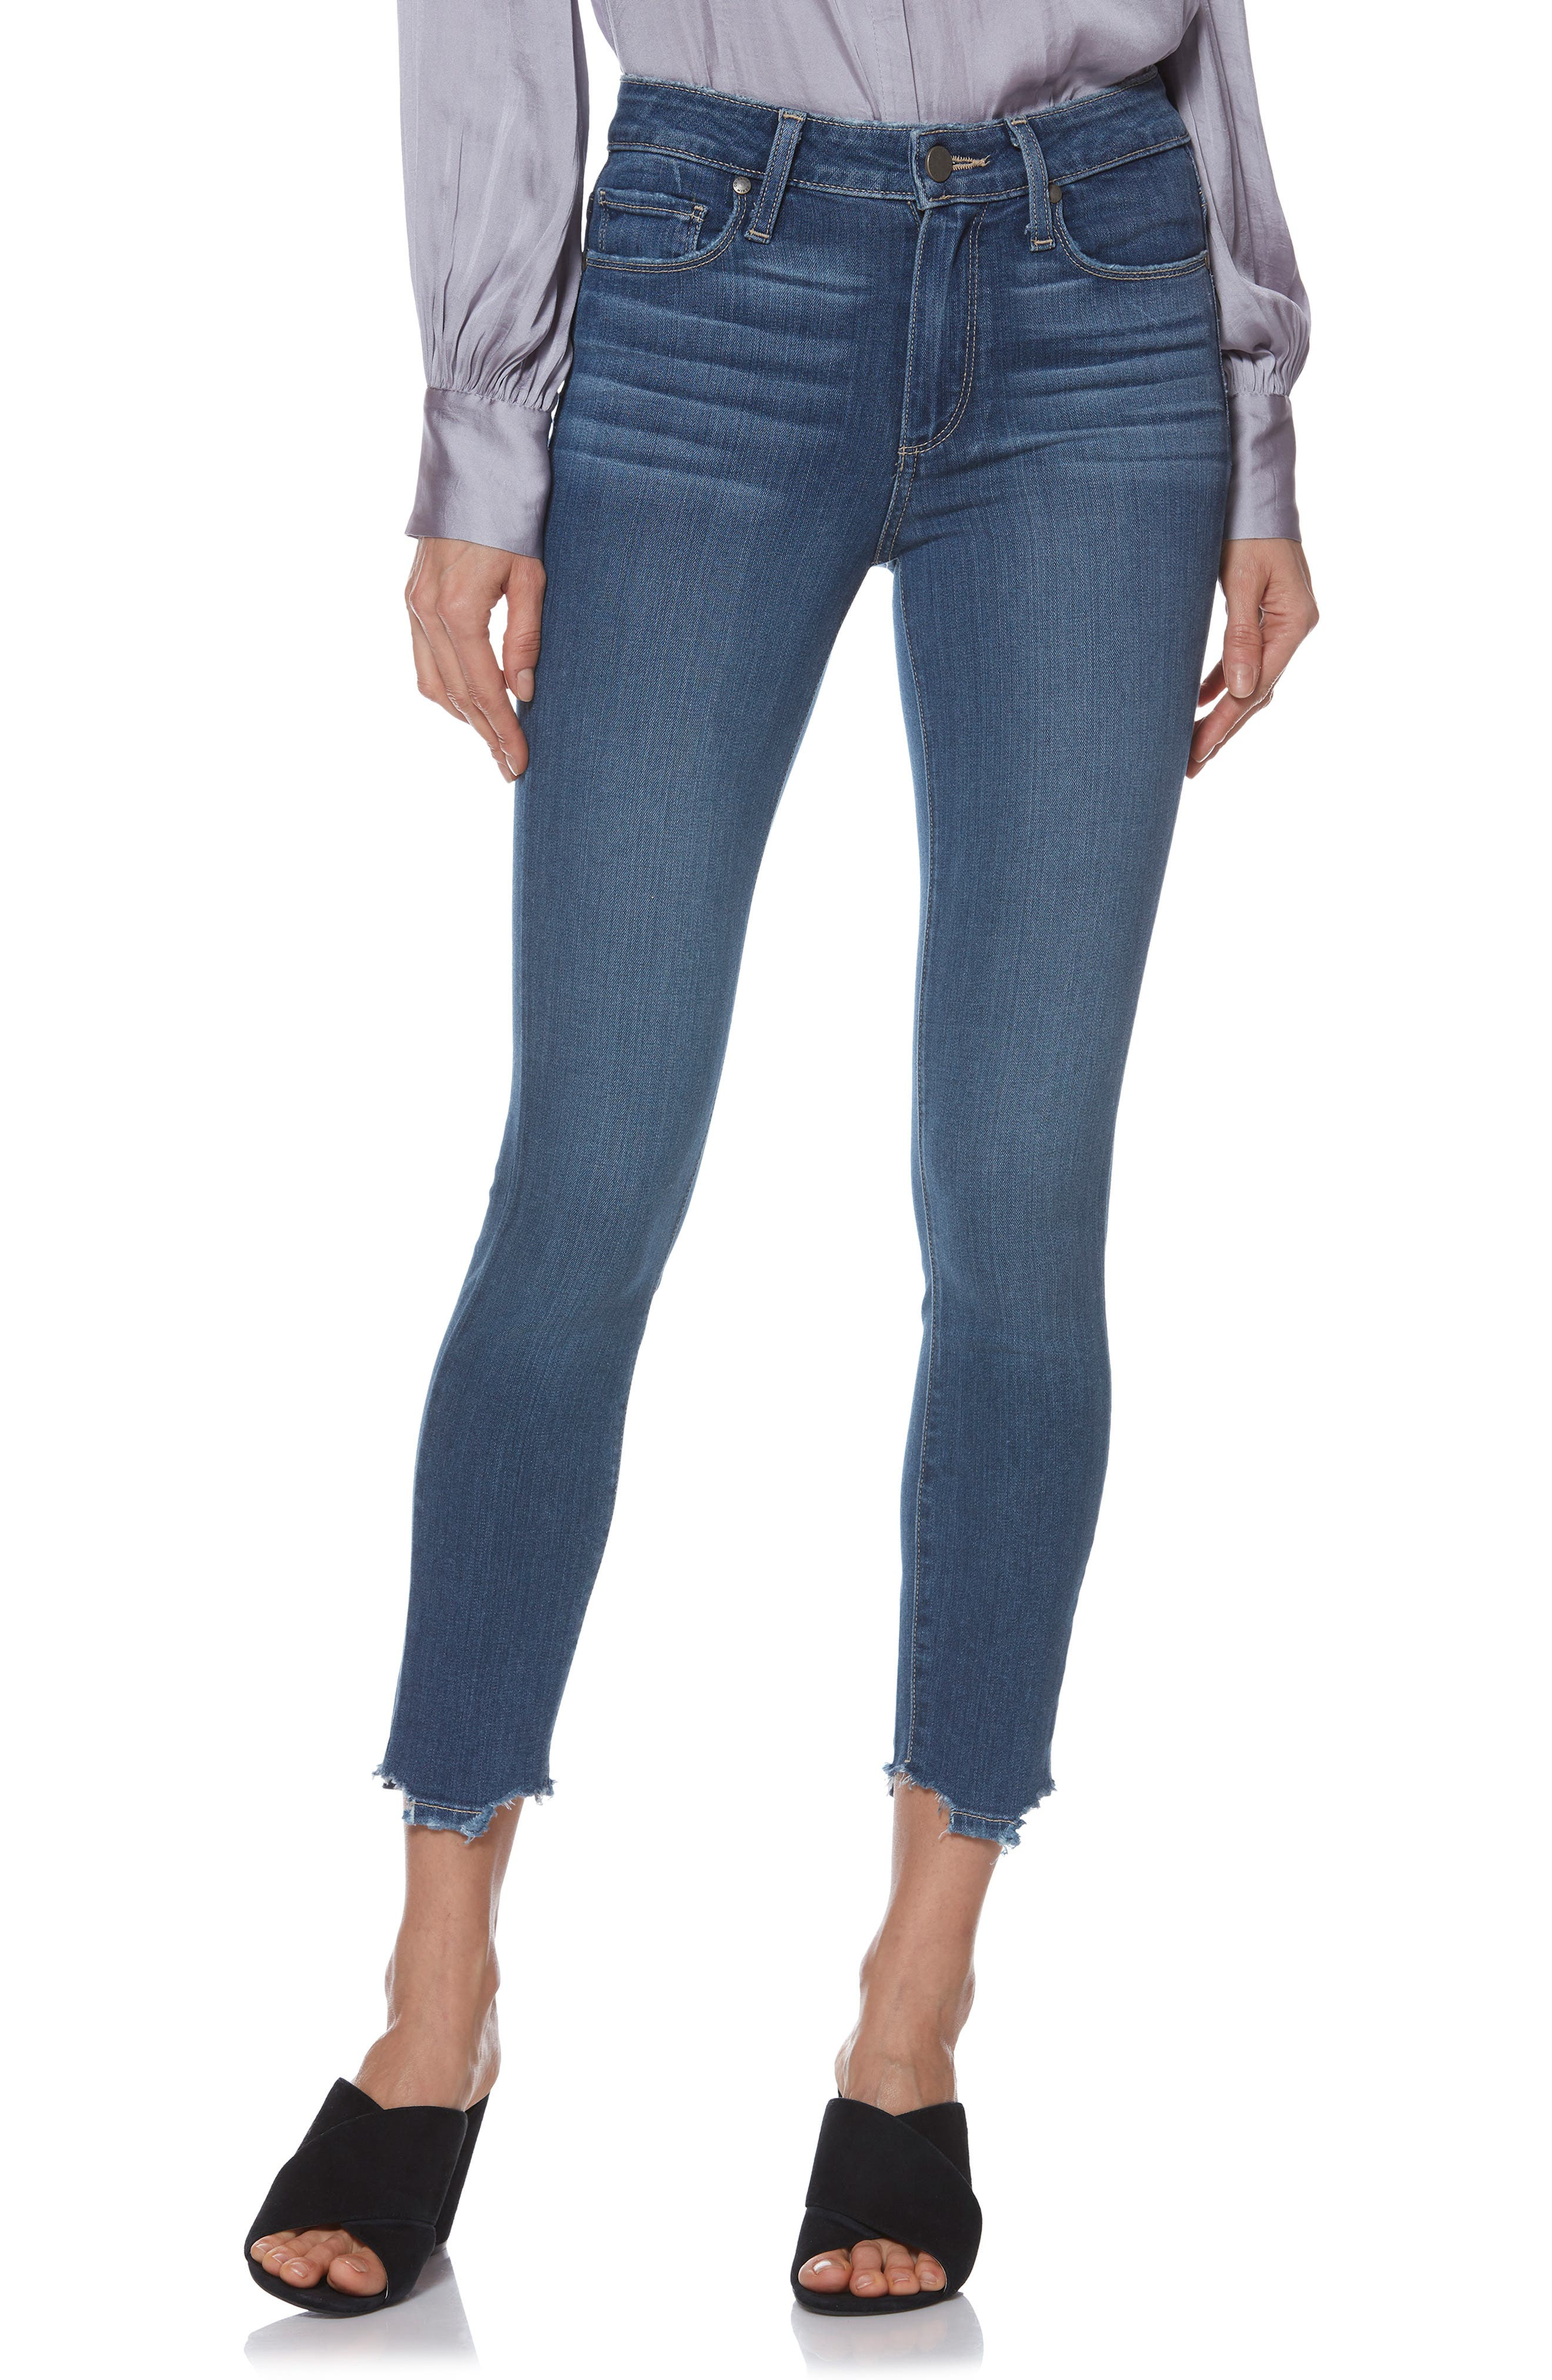 Transcend - Hoxton High Waist Crop Skinny Jeans,                         Main,                         color, 400